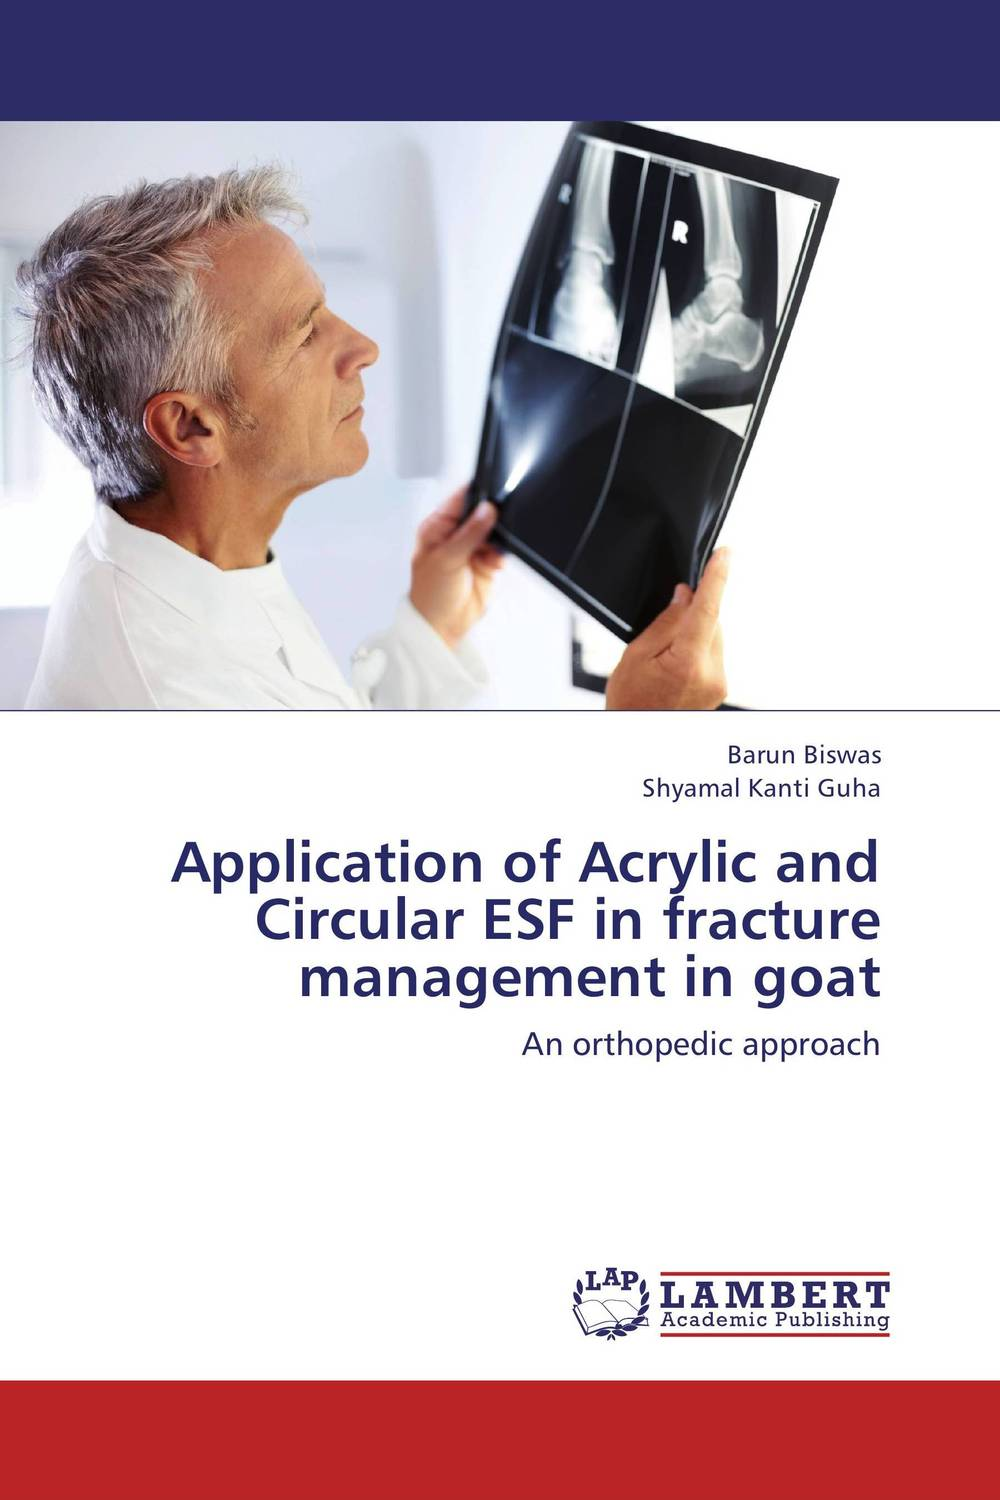 Application of Acrylic and Circular ESF in fracture management in goat